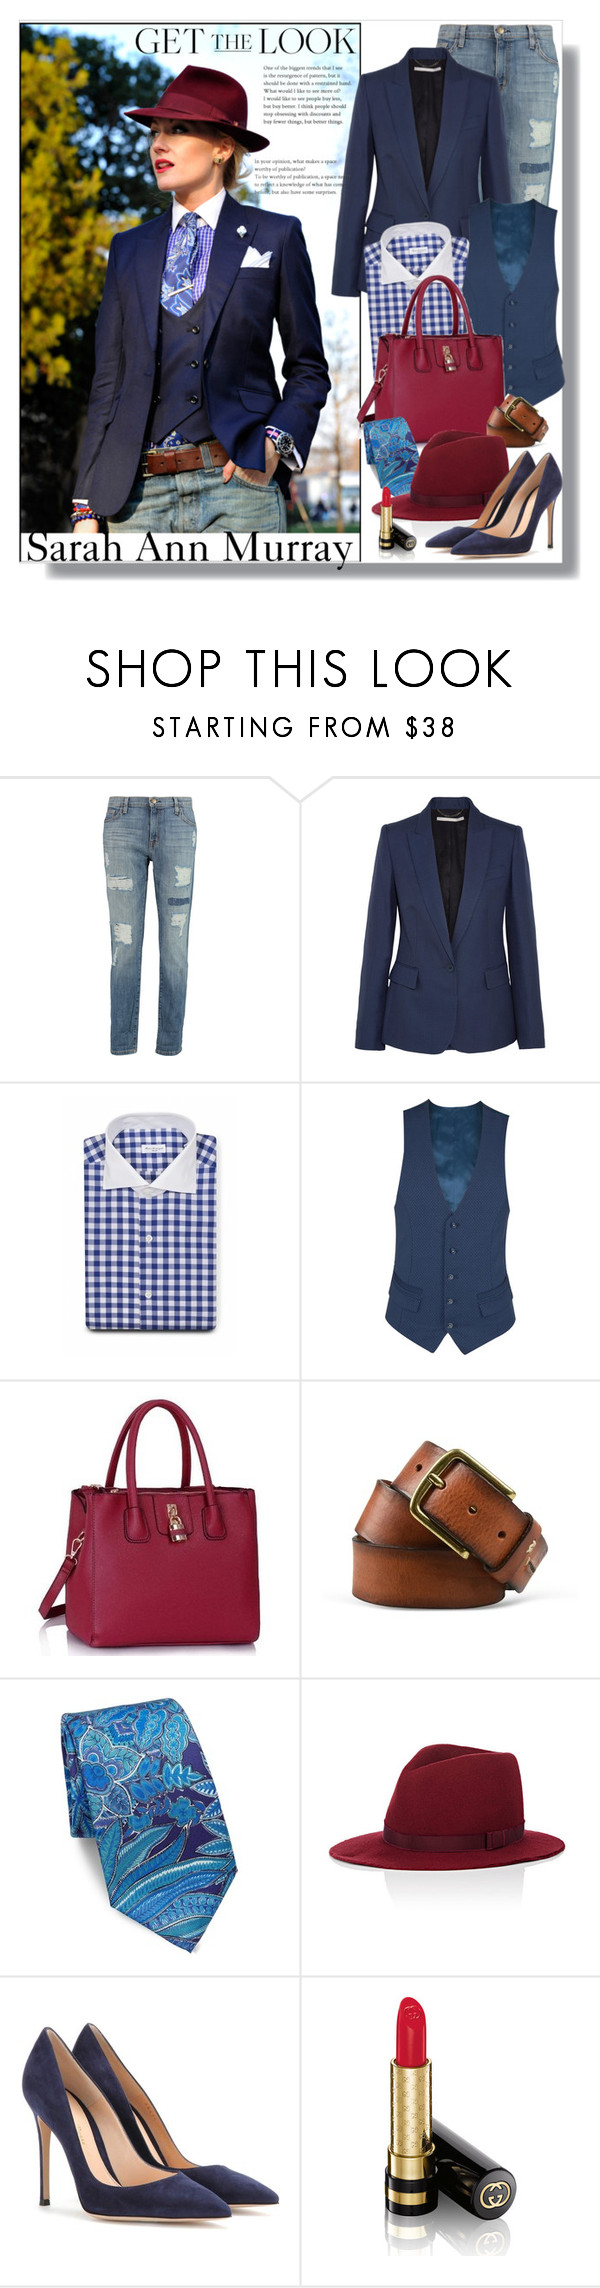 """""""Love Her Style!"""" by gasteovska-t ❤ liked on Polyvore featuring Current/Elliott, STELLA McCARTNEY, Diverso, Napapijri, Ralph Lauren, House of Lafayette, Gianvito Rossi, Gucci, StreetStyle and WhatToWear"""